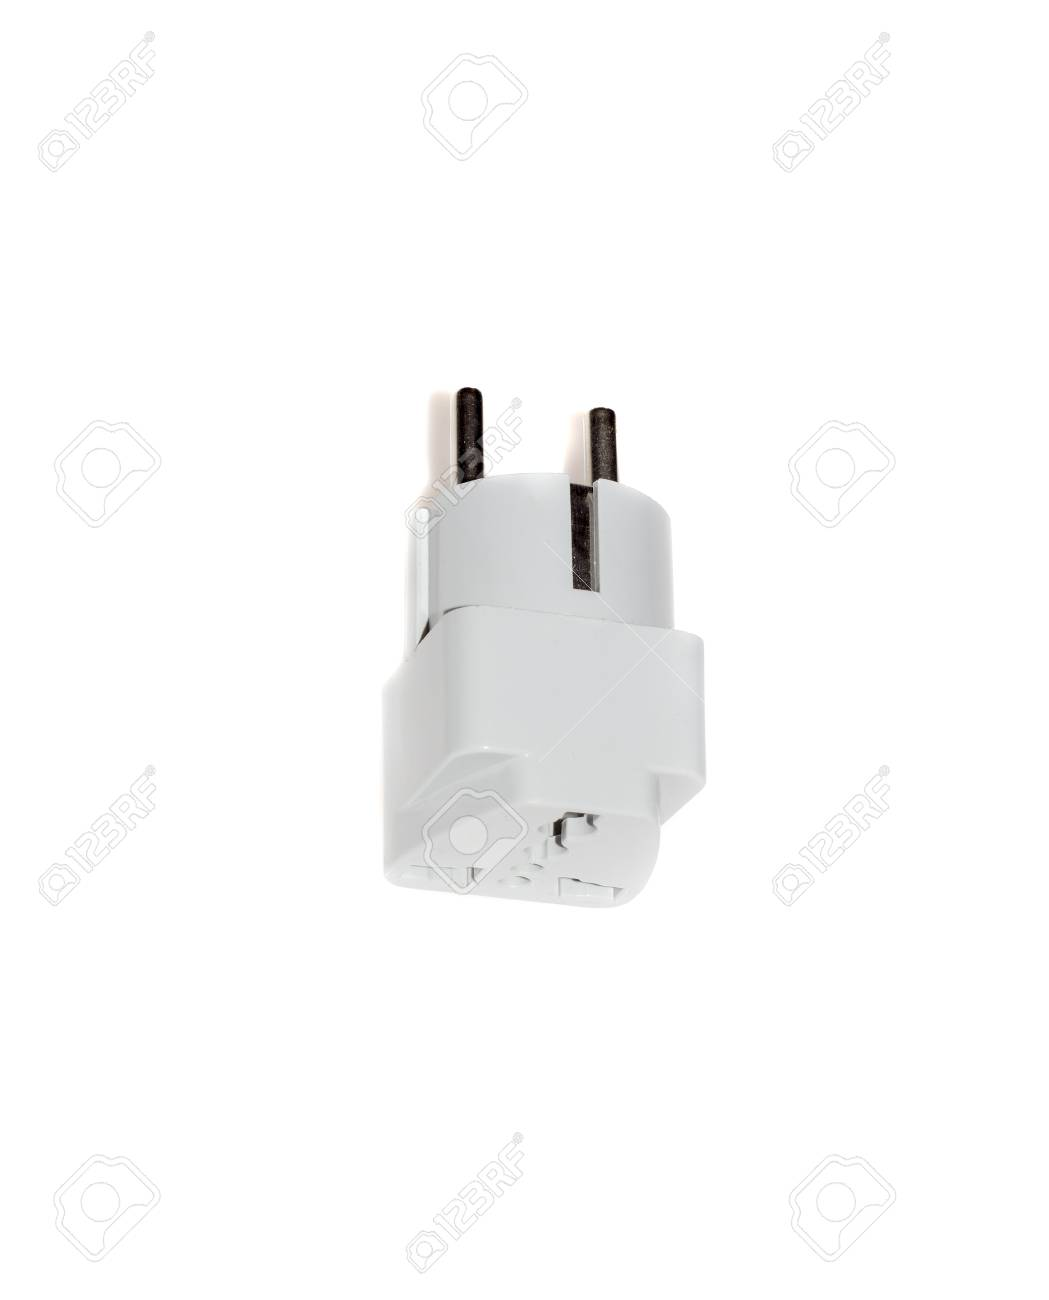 Travel Adapter Eu To Uk Close Up Universal American To European Travel Adapter Converter